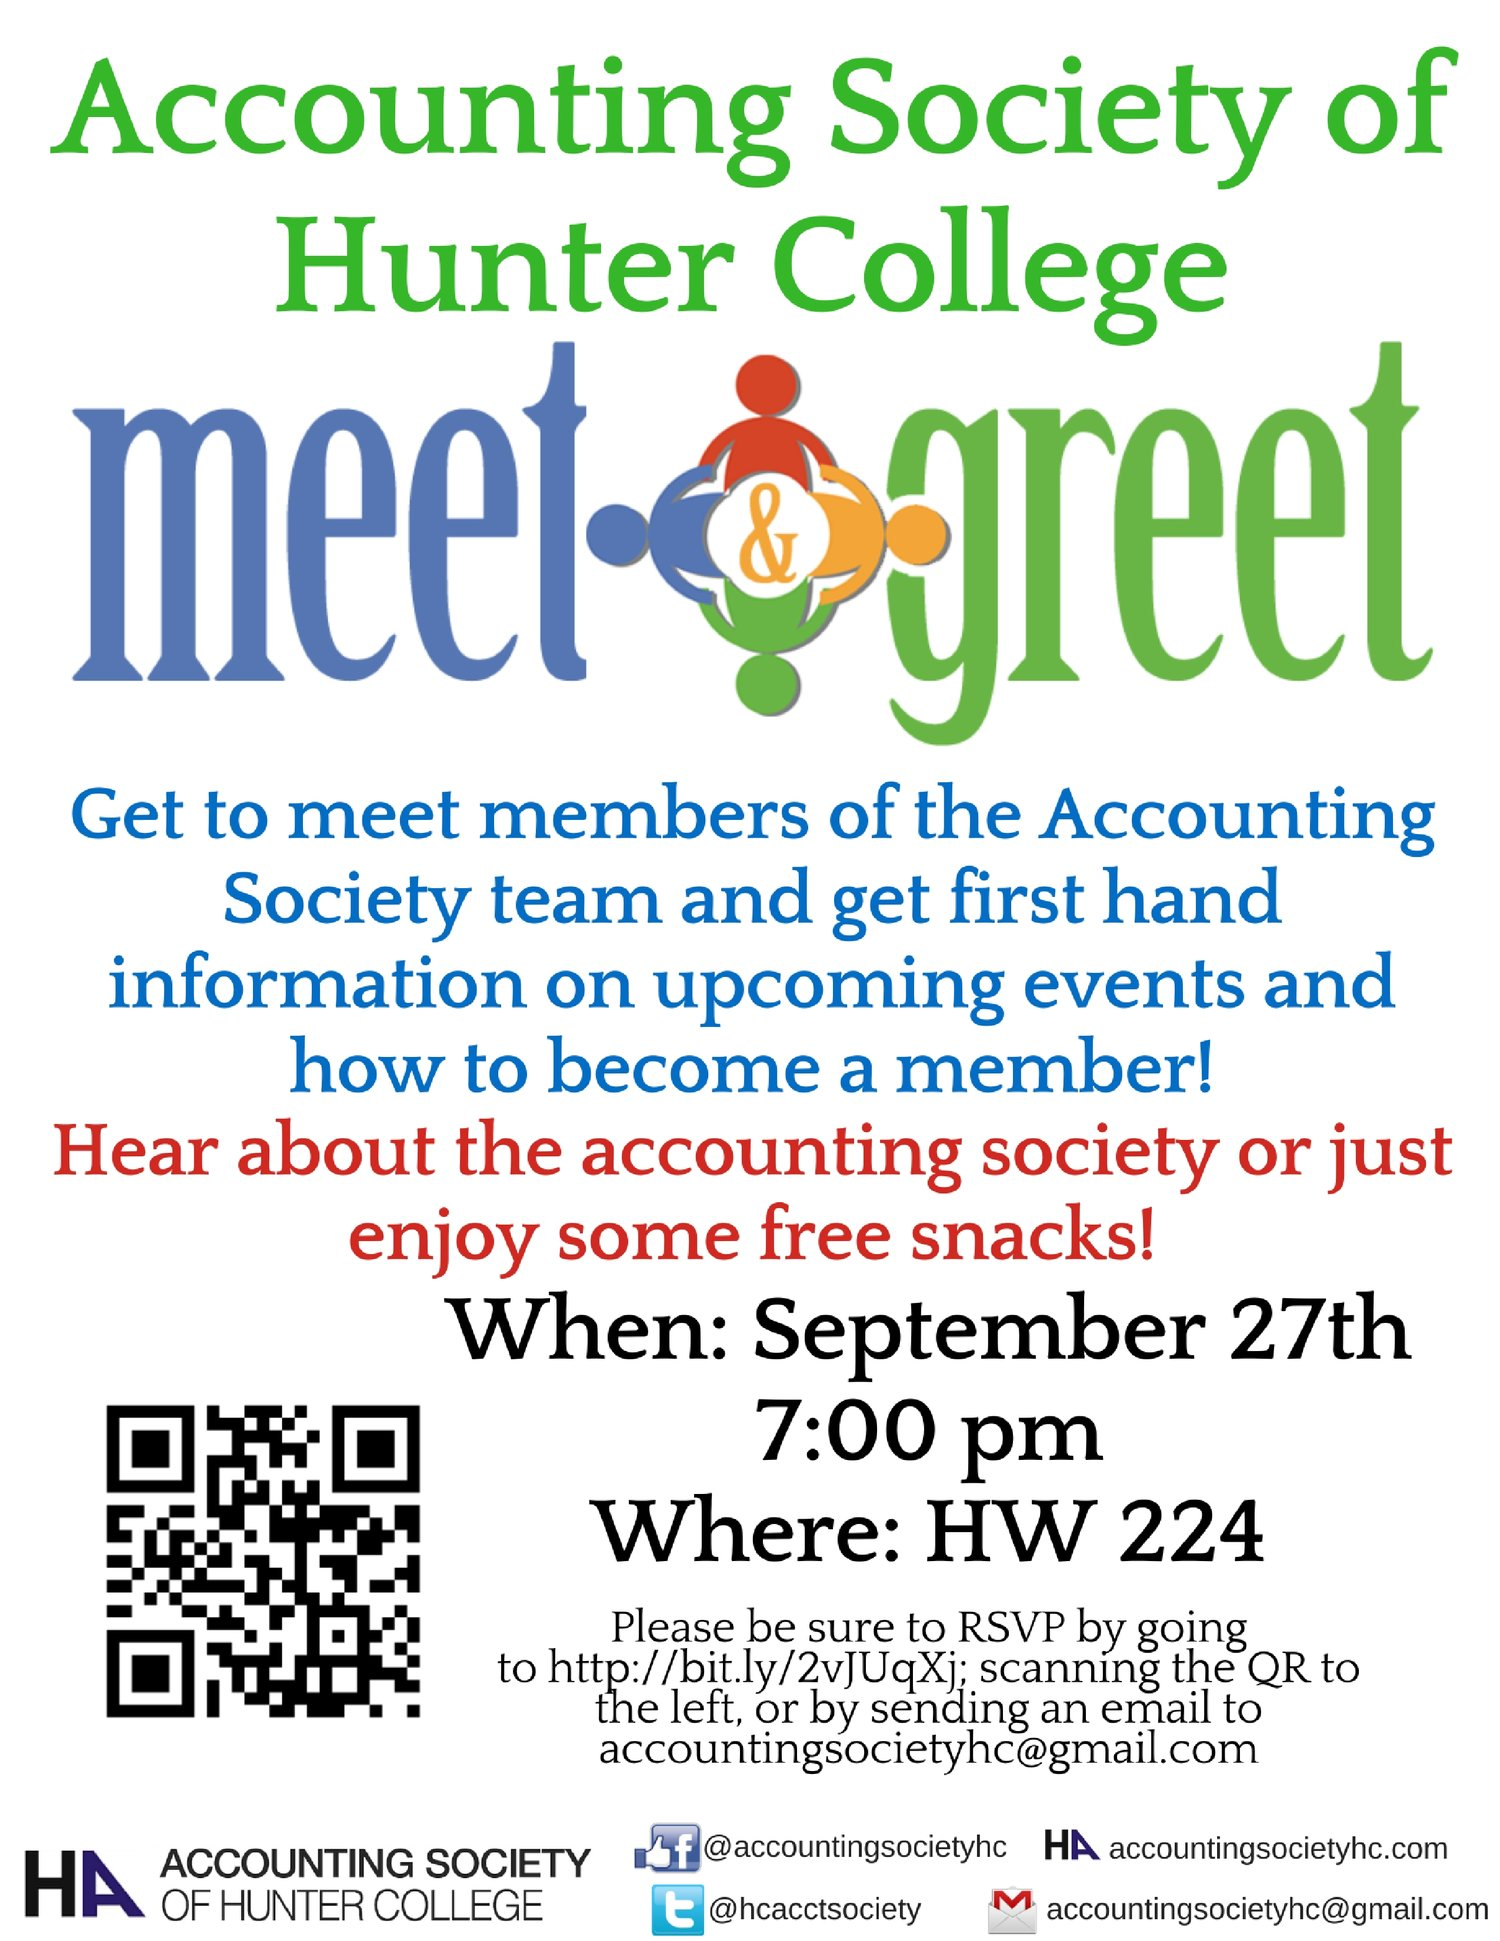 Meet And Greet Accounting Society Of Hunter College